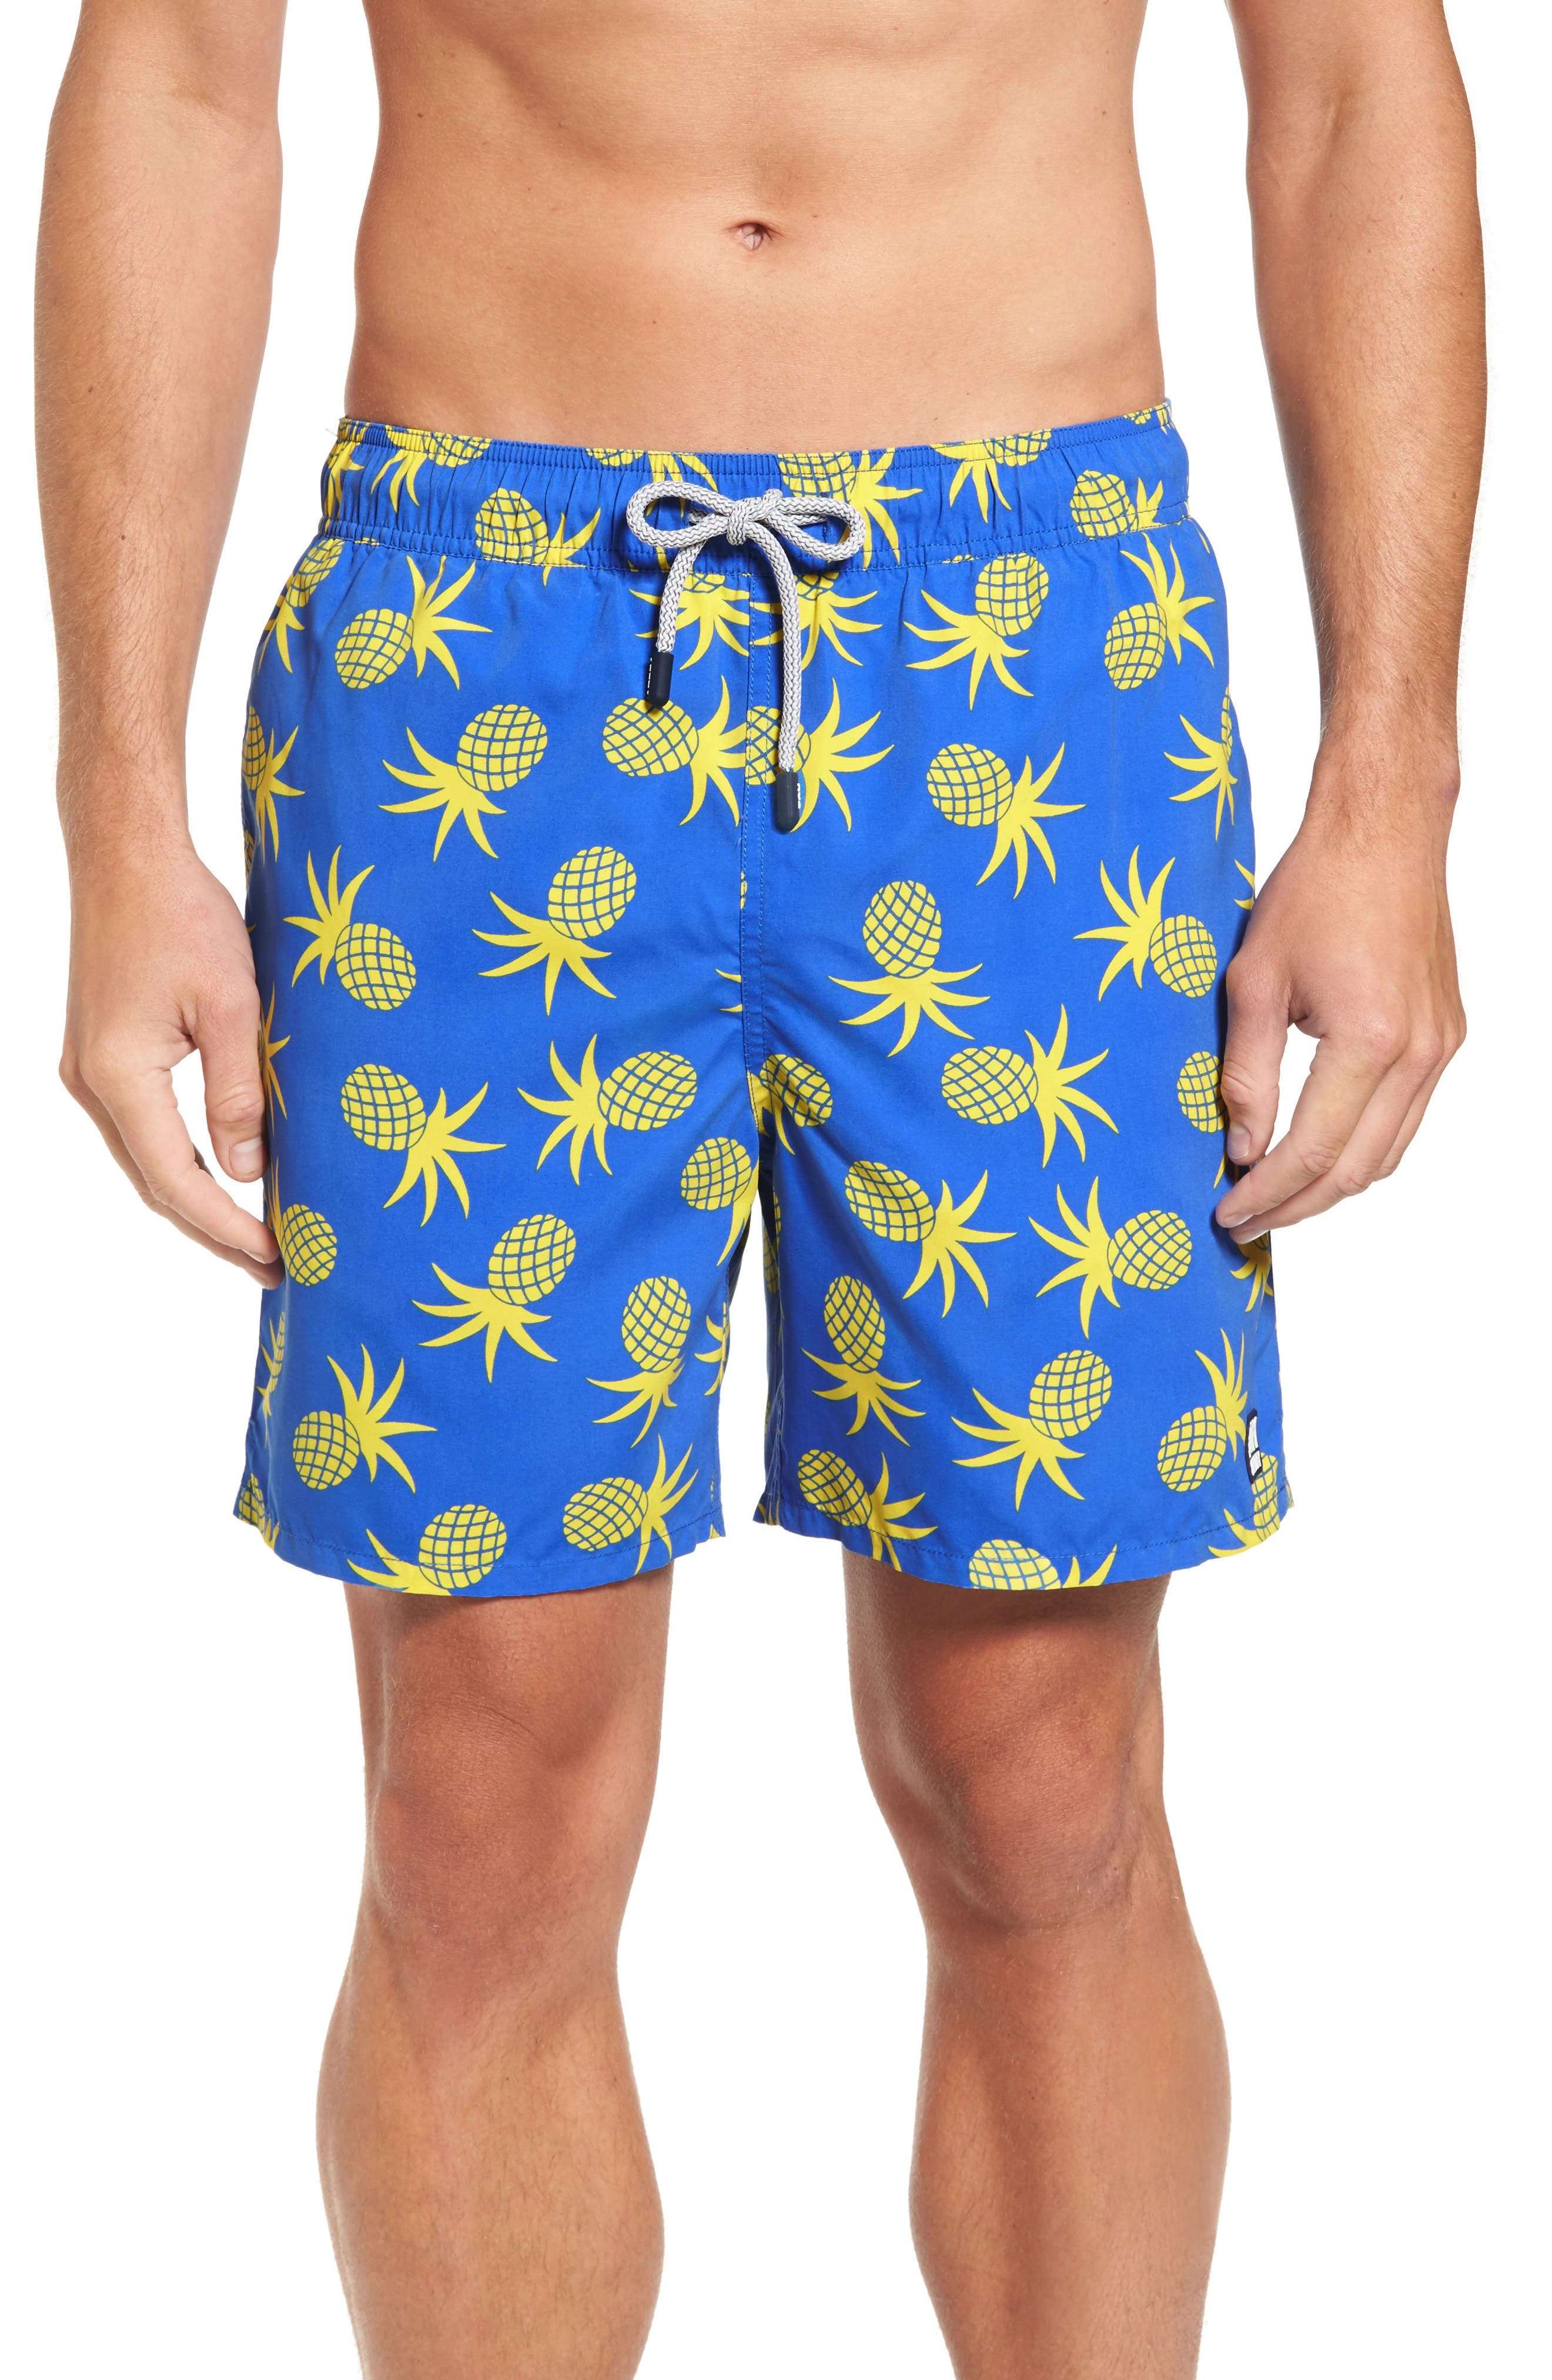 Pineapple Swim Trunks,                         Main,                         color, French Blue